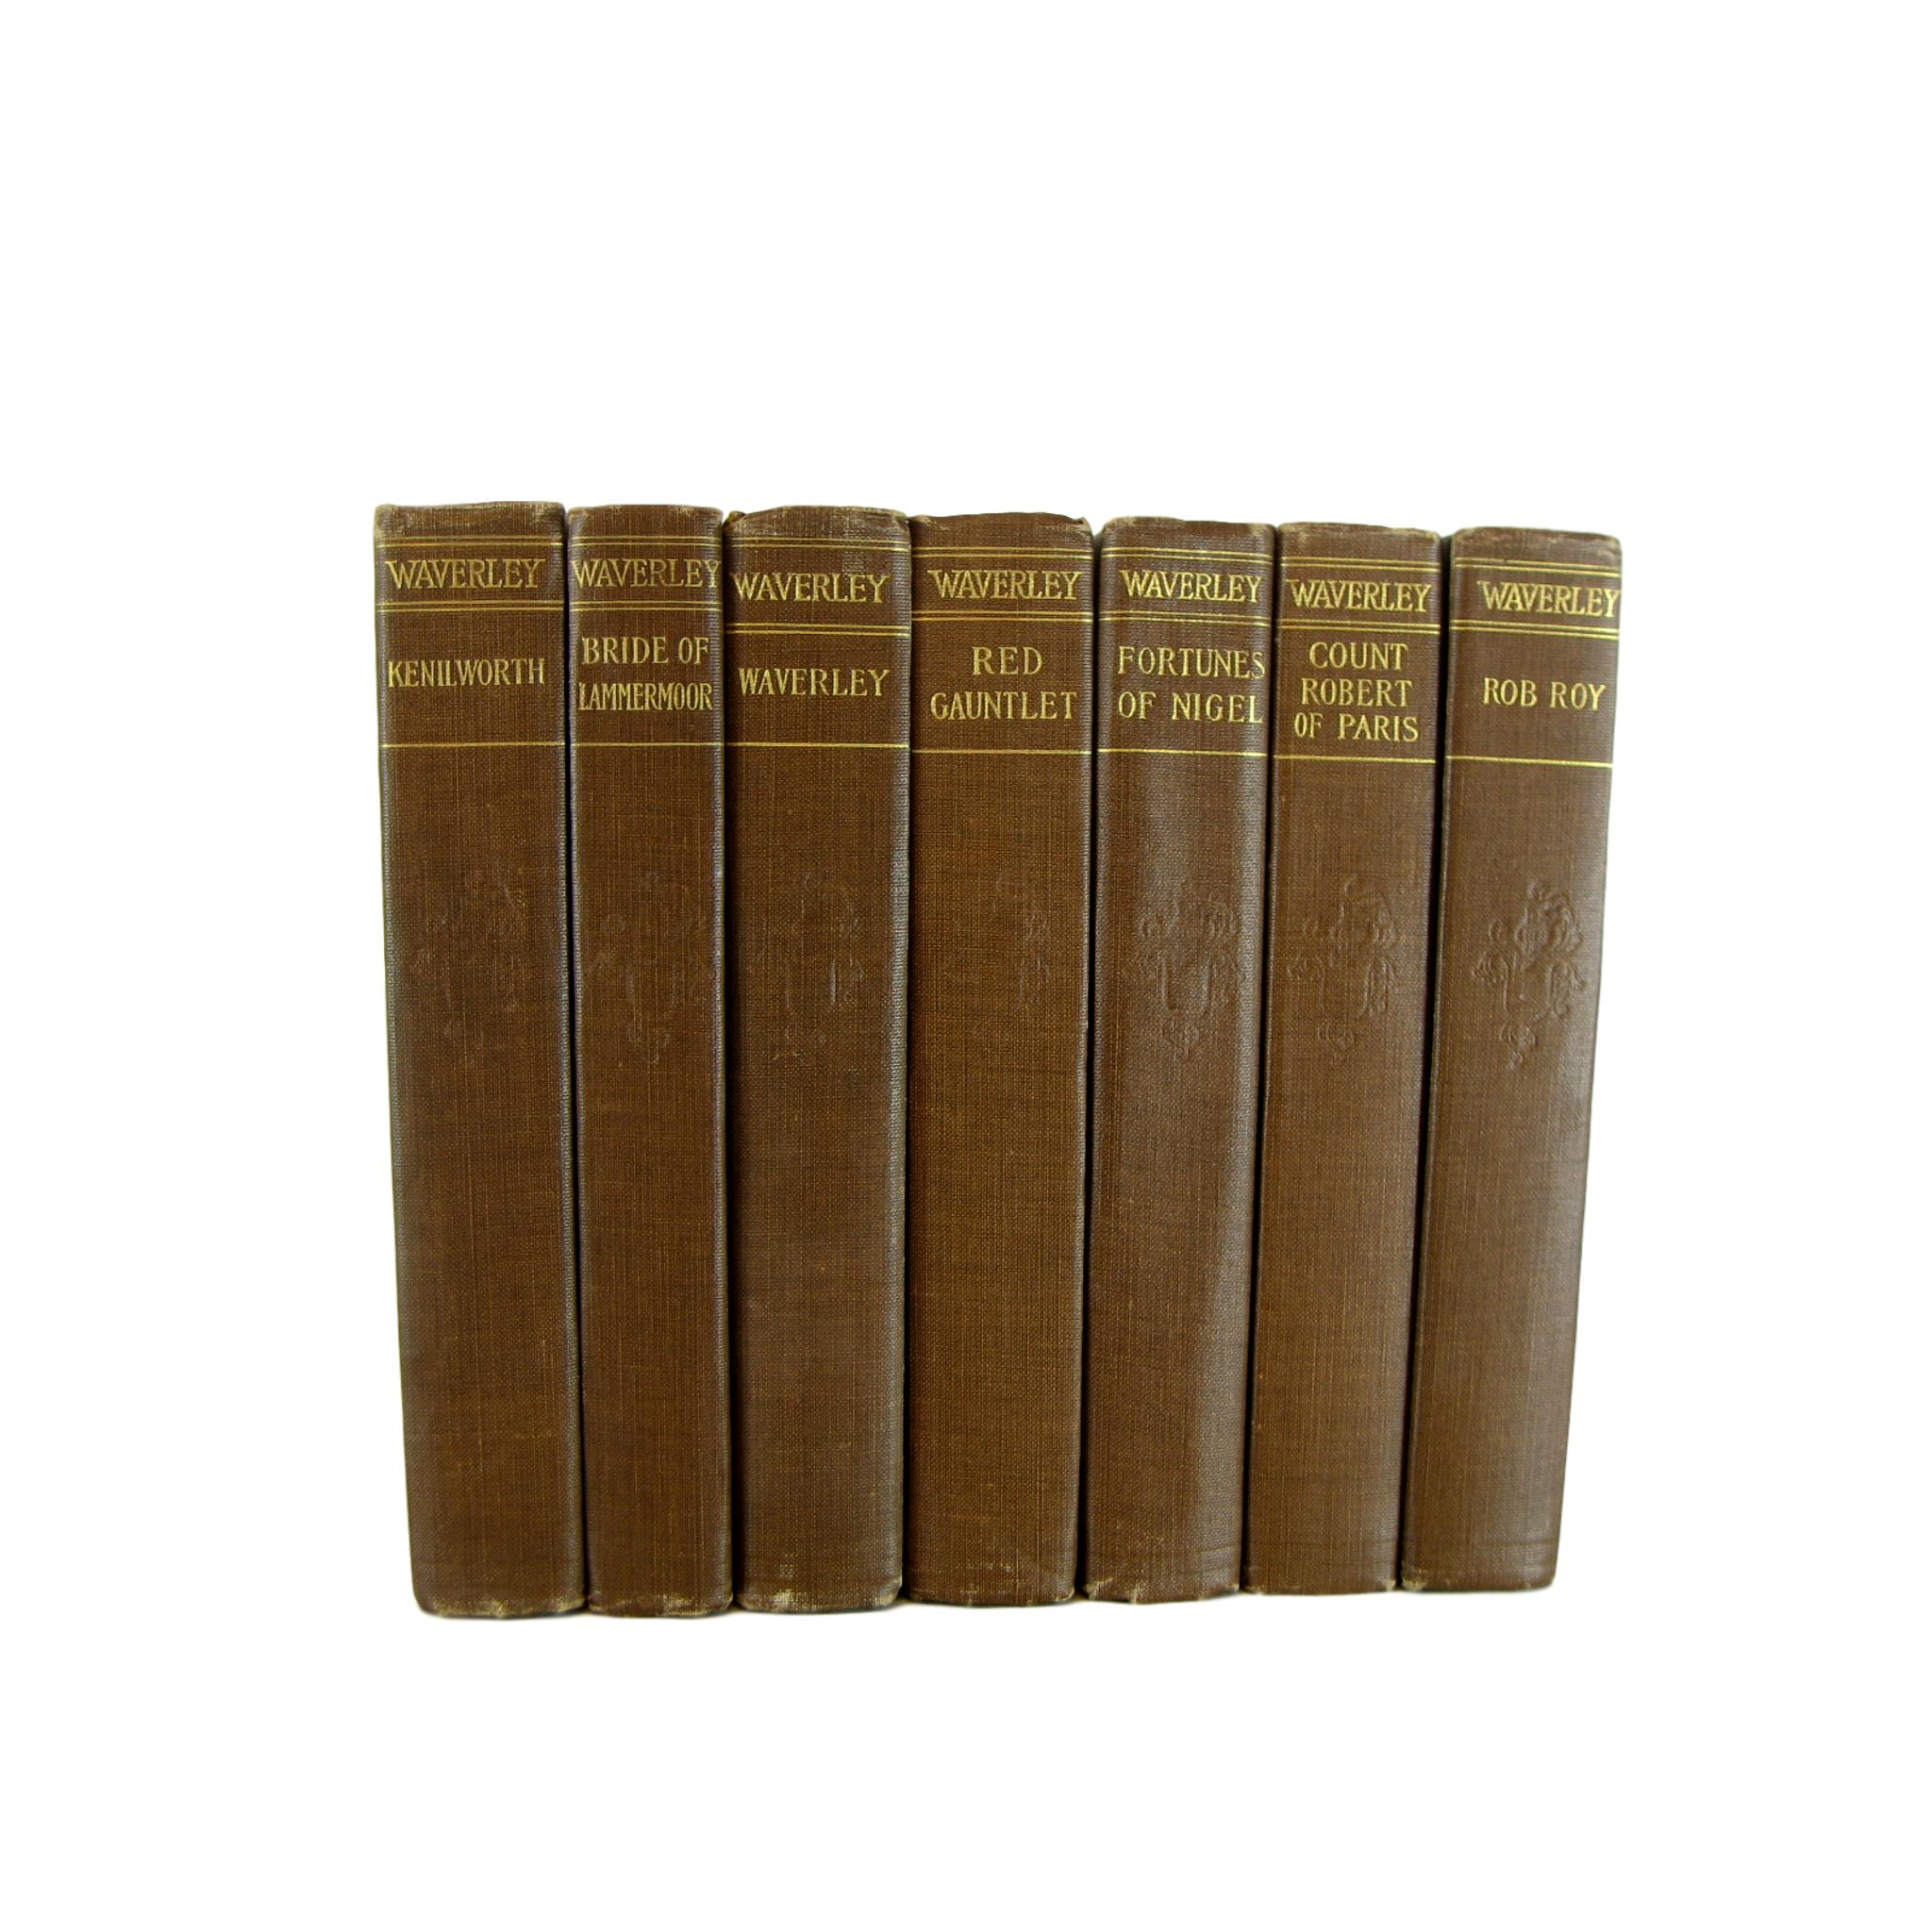 Brown Waverley Novels by Sir Walter Scott for  Shelf Decor, S/7 - Decades of Vintage